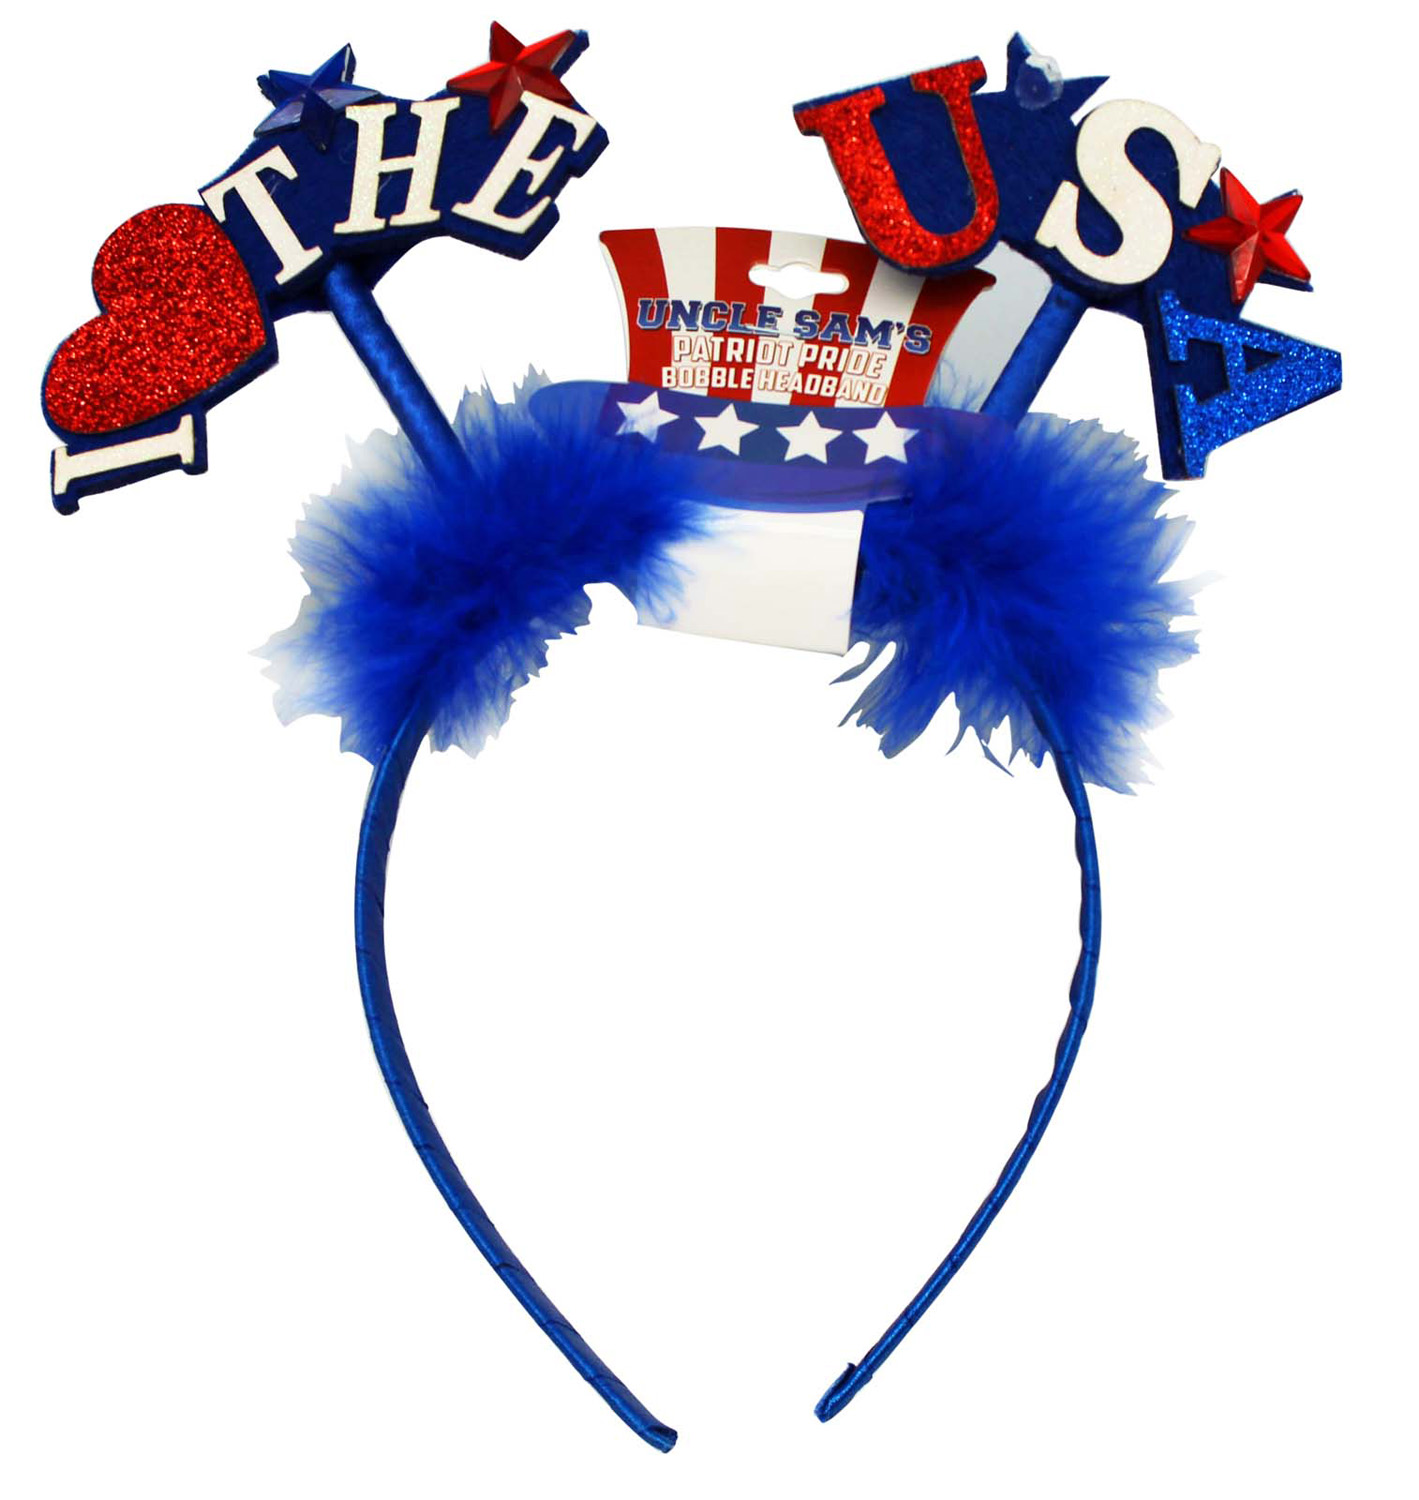 Uncle Sam's Patriot Pride Bobble Headband - I Love The USA (Blue)